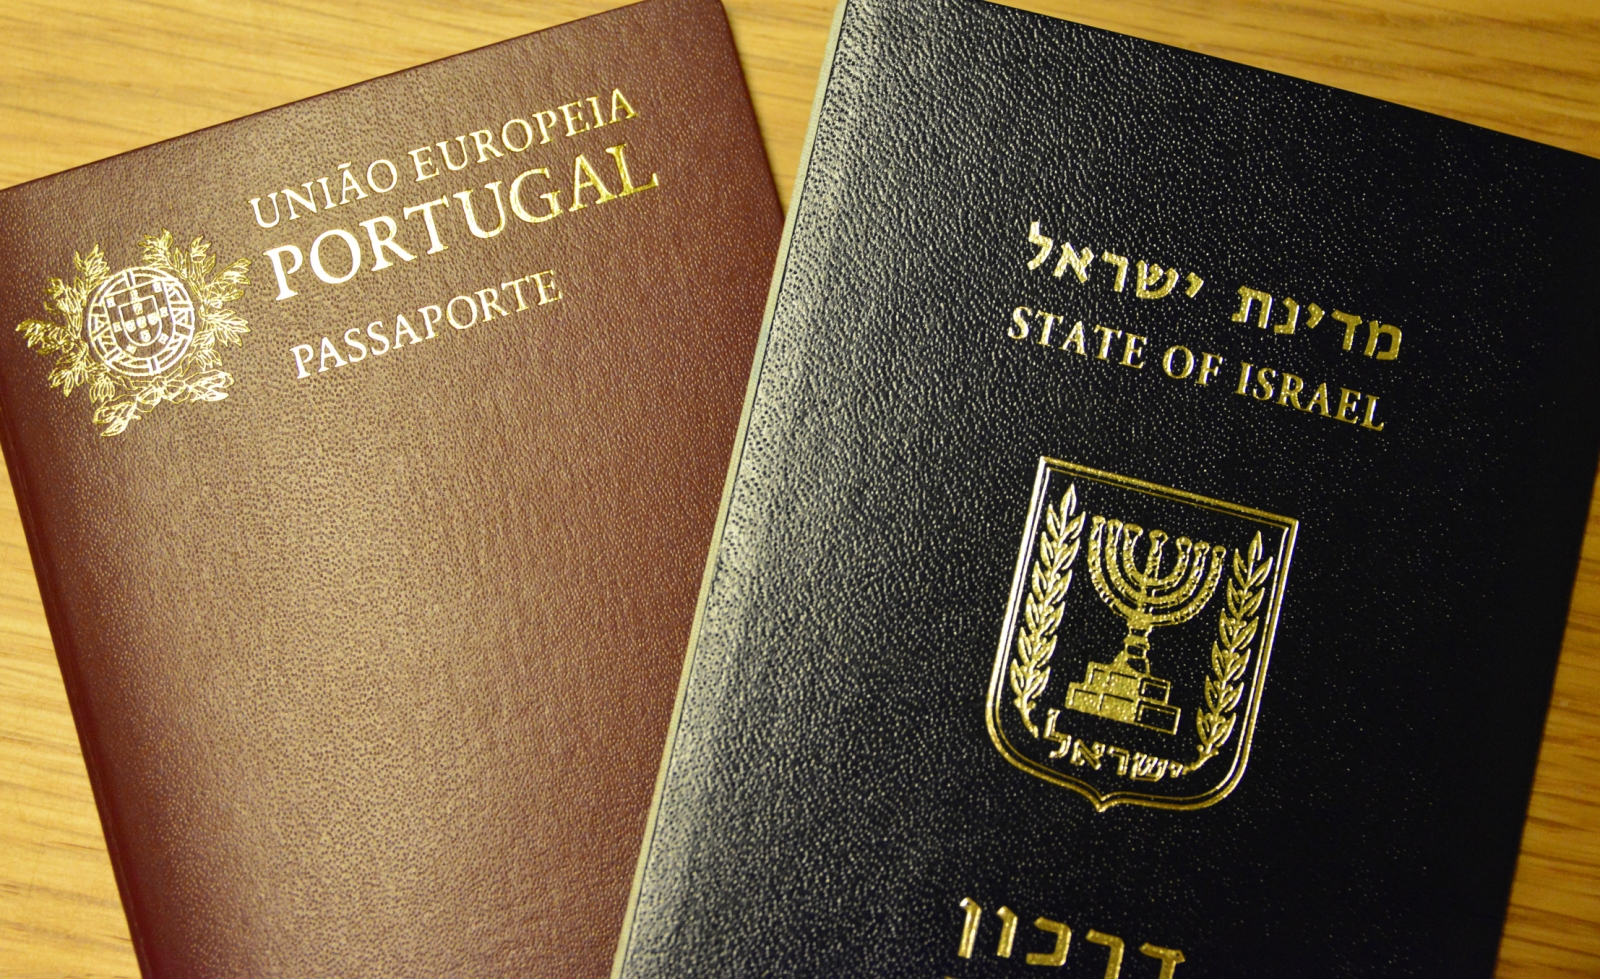 Portugal and Israel passports